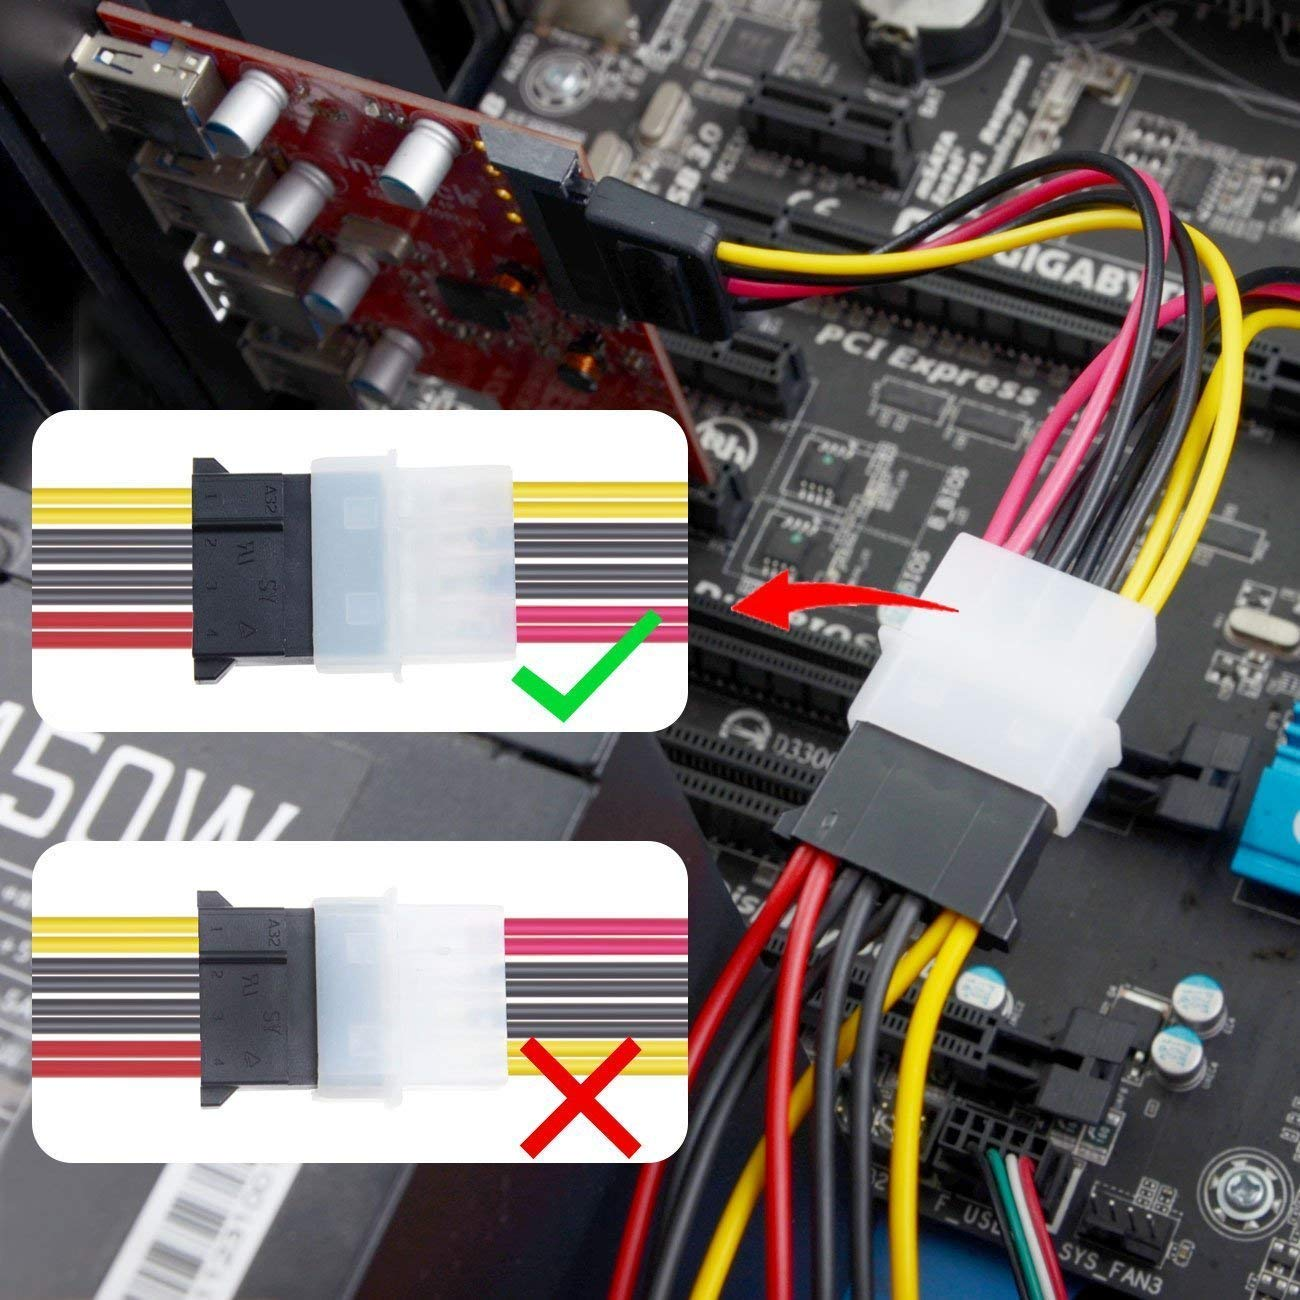 Inateck PCI-E to USB 3.0 (5 Ports) PCI Express Card and 15-Pin Power Connector, Red (KT5001) by Inateck (Image #1)